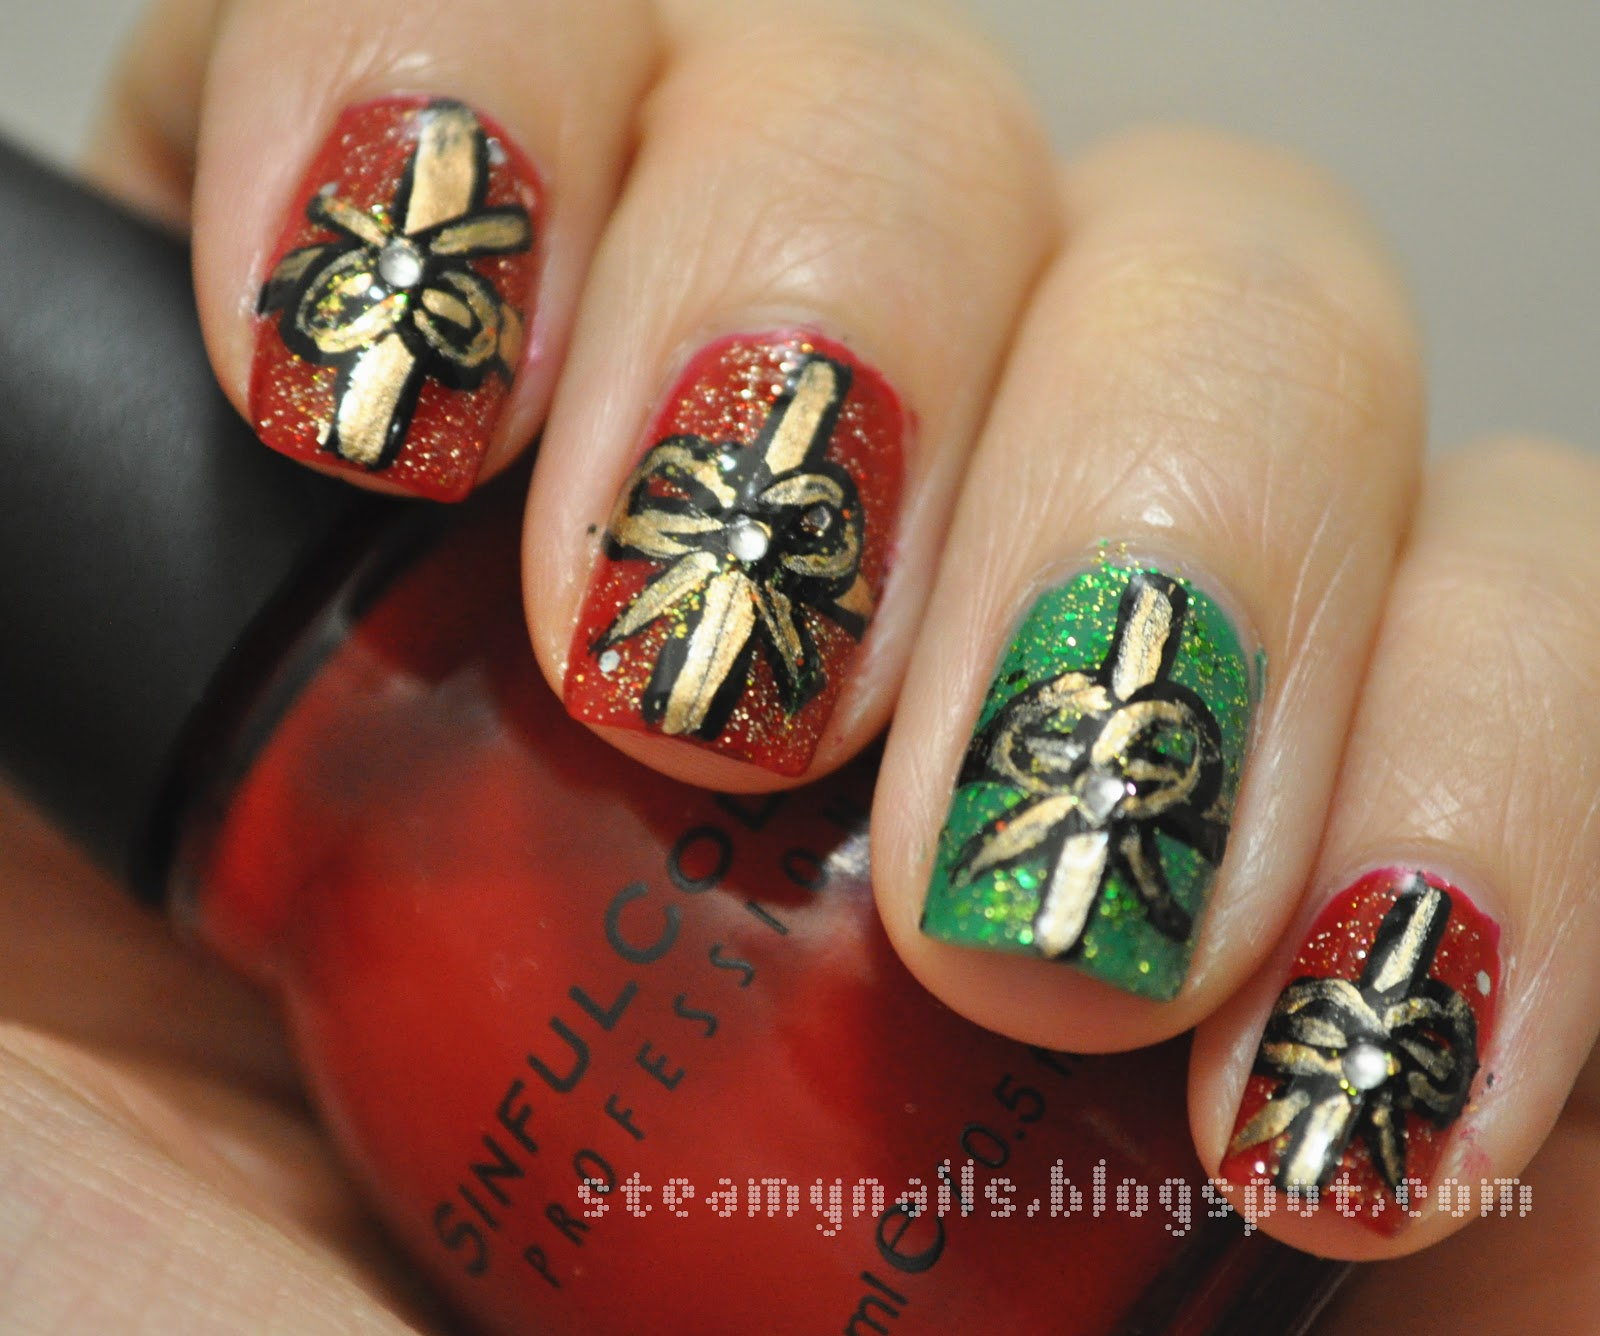 Steamy Nails Christmas Presents Nail Art Inspired By